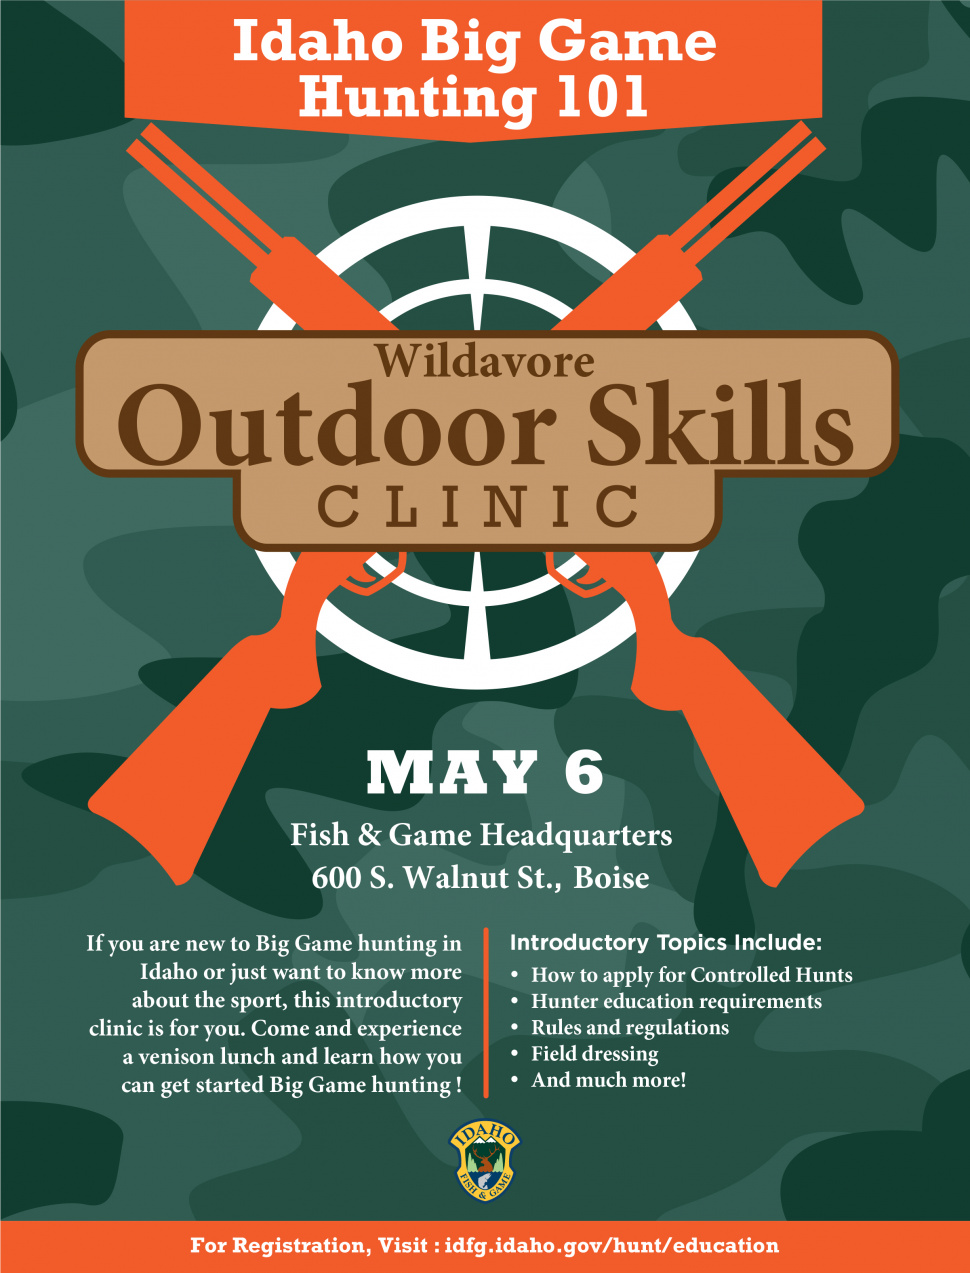 Outdoor skills workshop slated idaho fish and game for Fish and game idaho